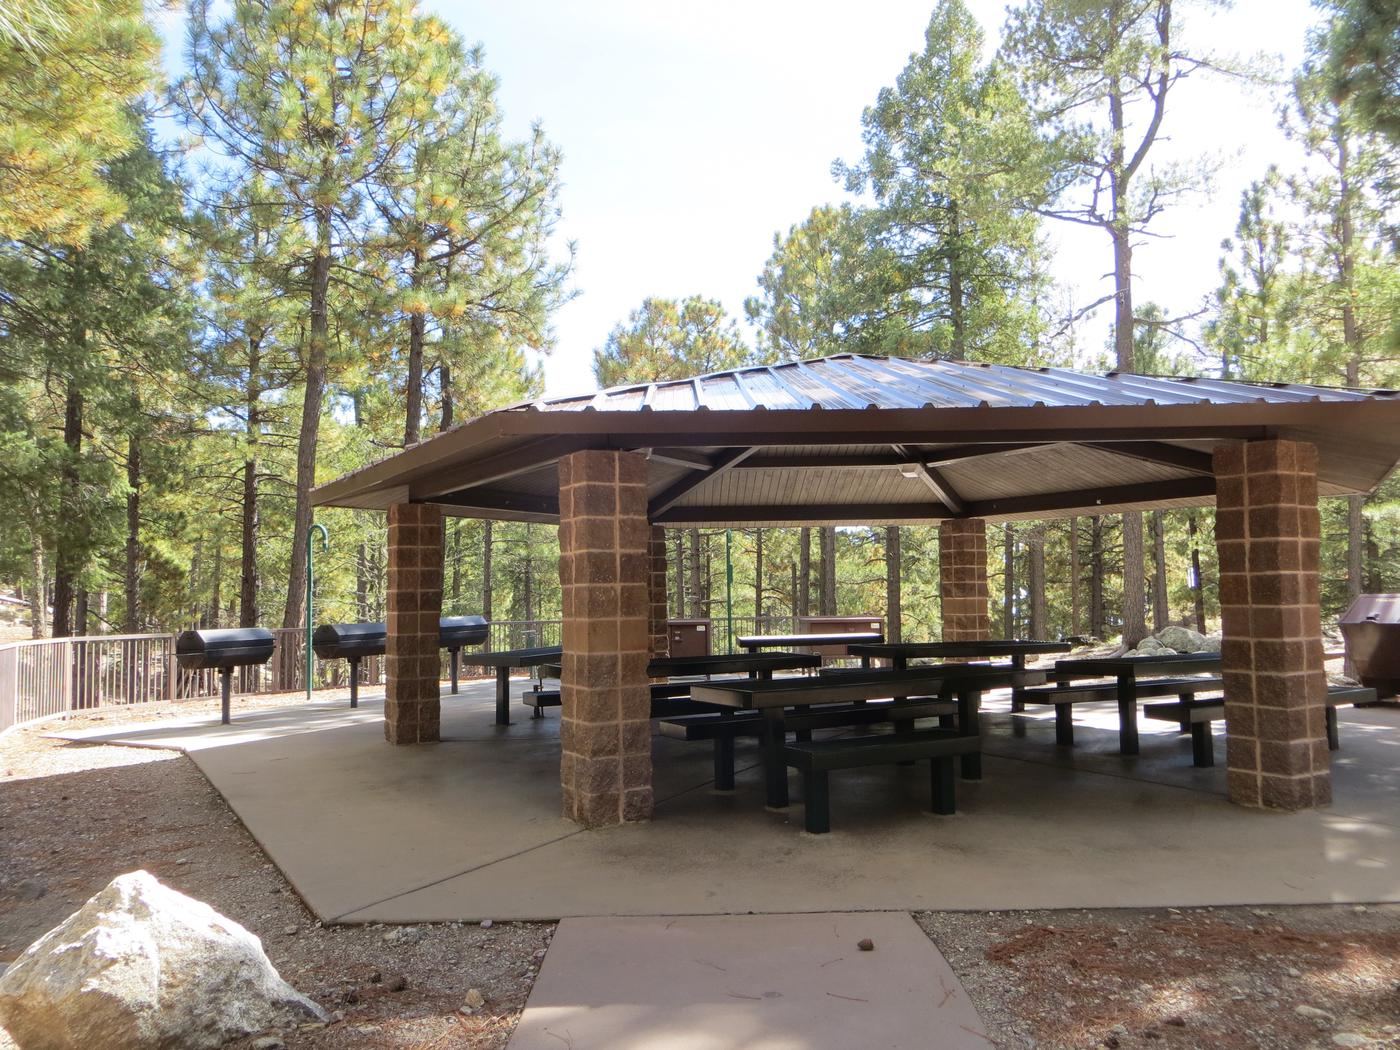 Whitetail Campground Group Site #04 featuring large ramada with multiple picnic tables and food storage.